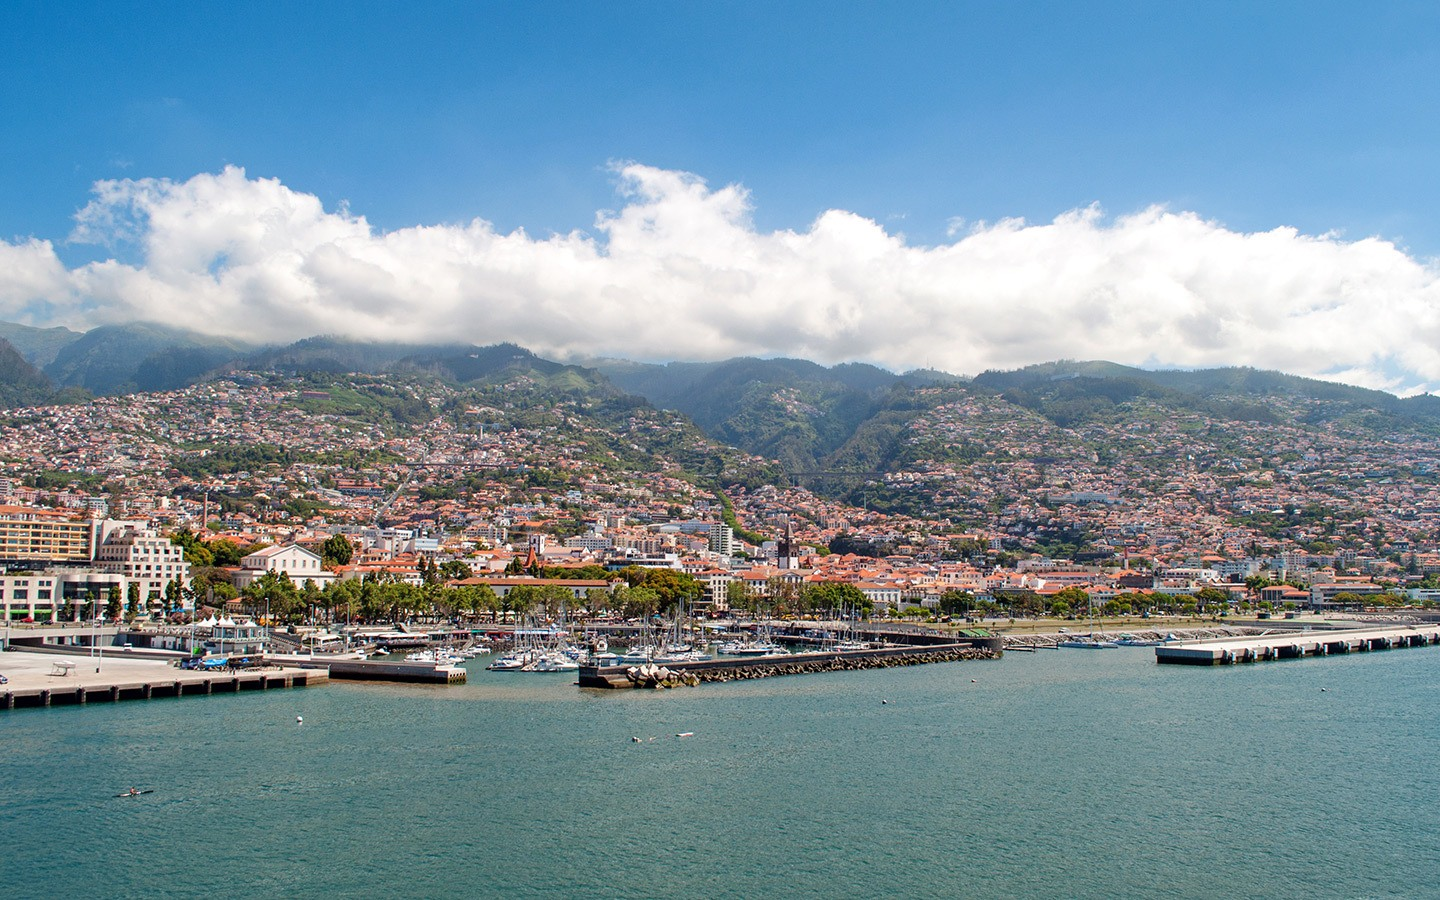 Sailing out of Madeira harbour on a P&O cruise